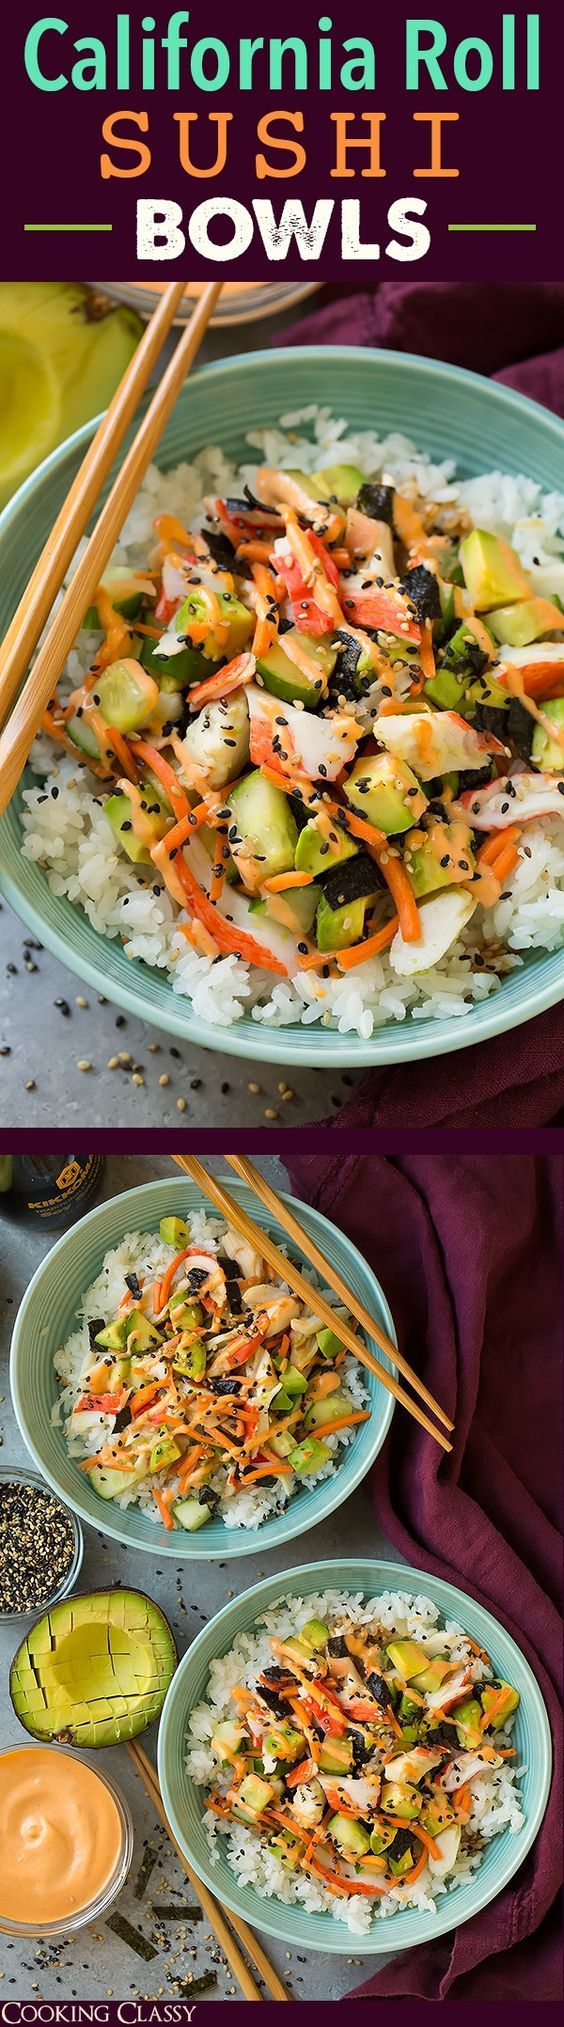 California Roll Sushi Bowls - quicker and easier than traditional sushi yet equally as delicious! Definitely a repeat recipe! #weightloss